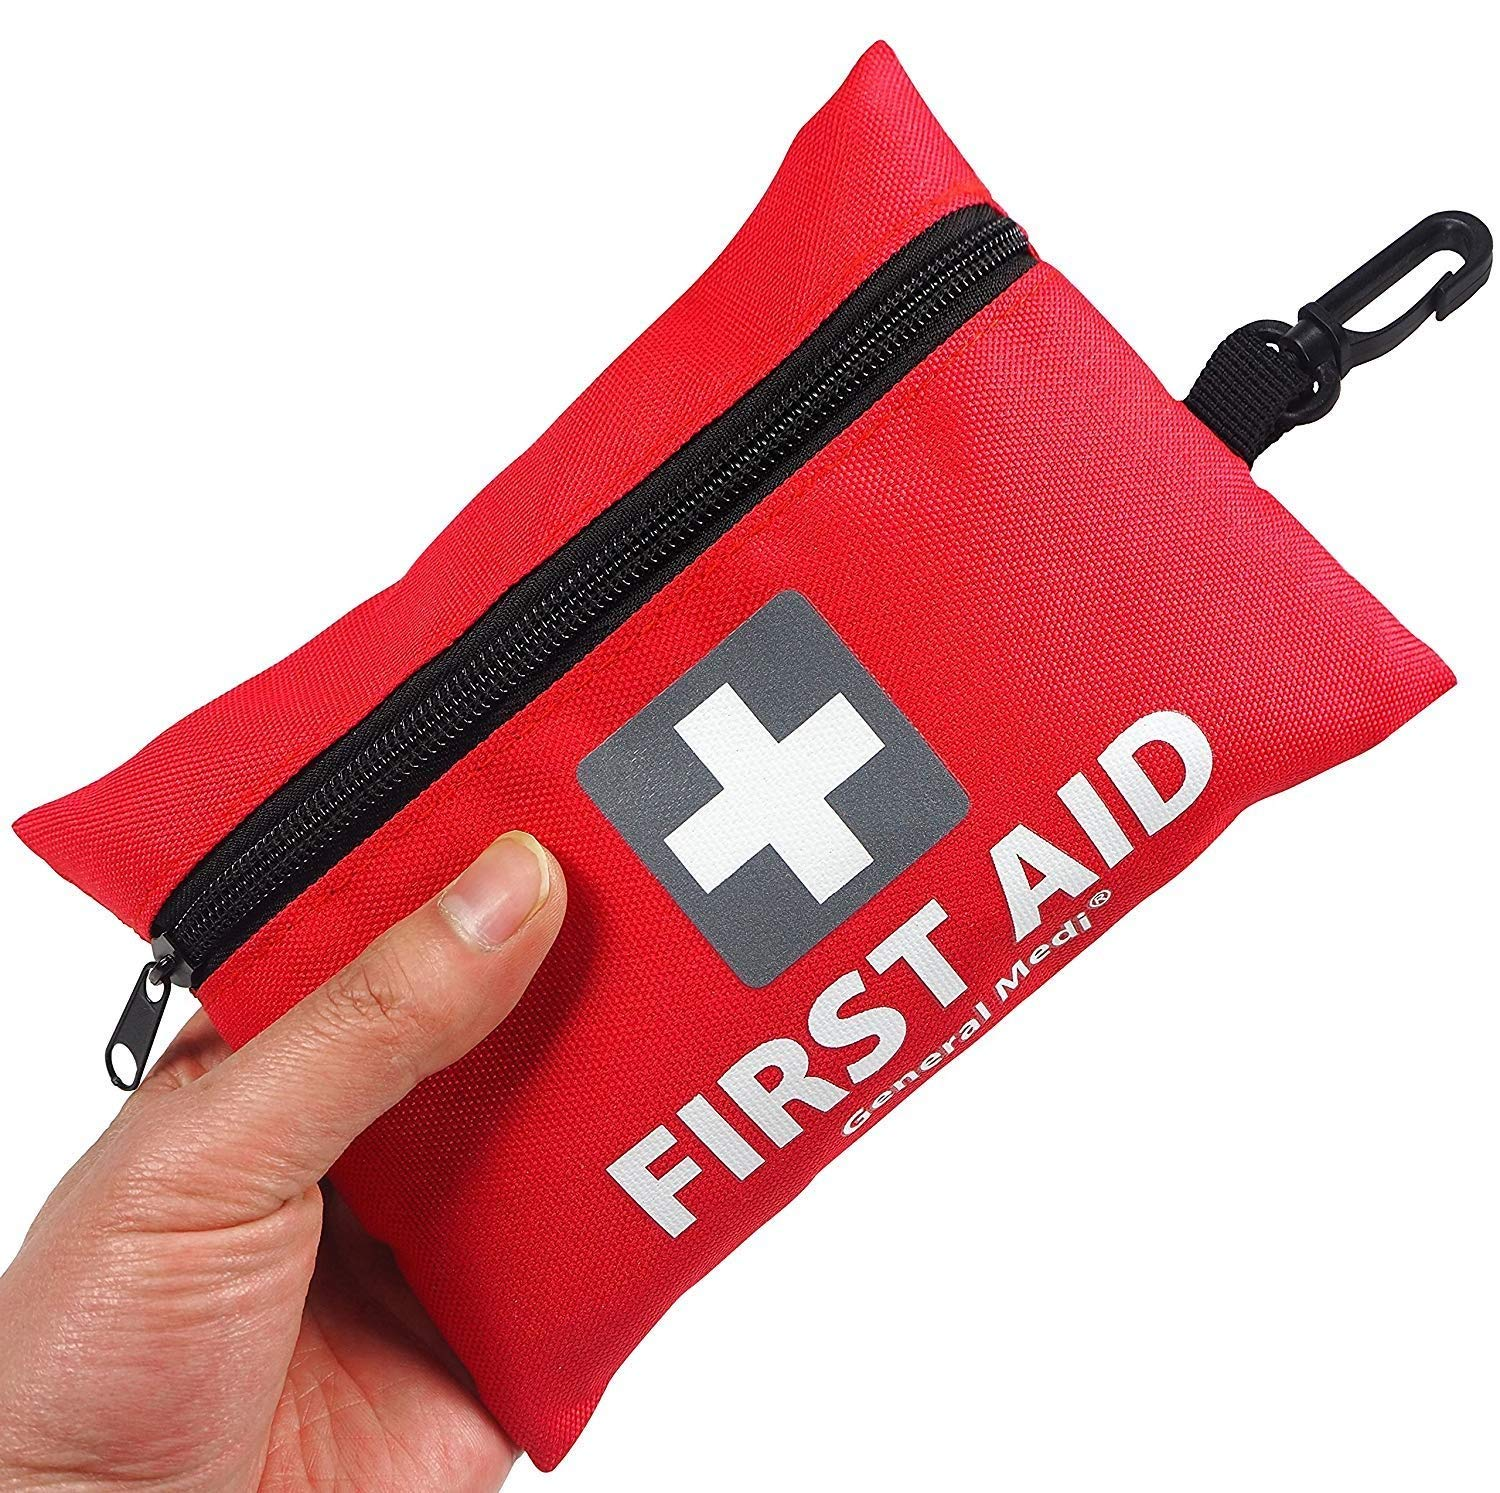 Mini First Aid Kit, 92 Pieces Small First Aid Kit - Includes Emergency Foil Blanket, Scissors for Travel, Home, Office…